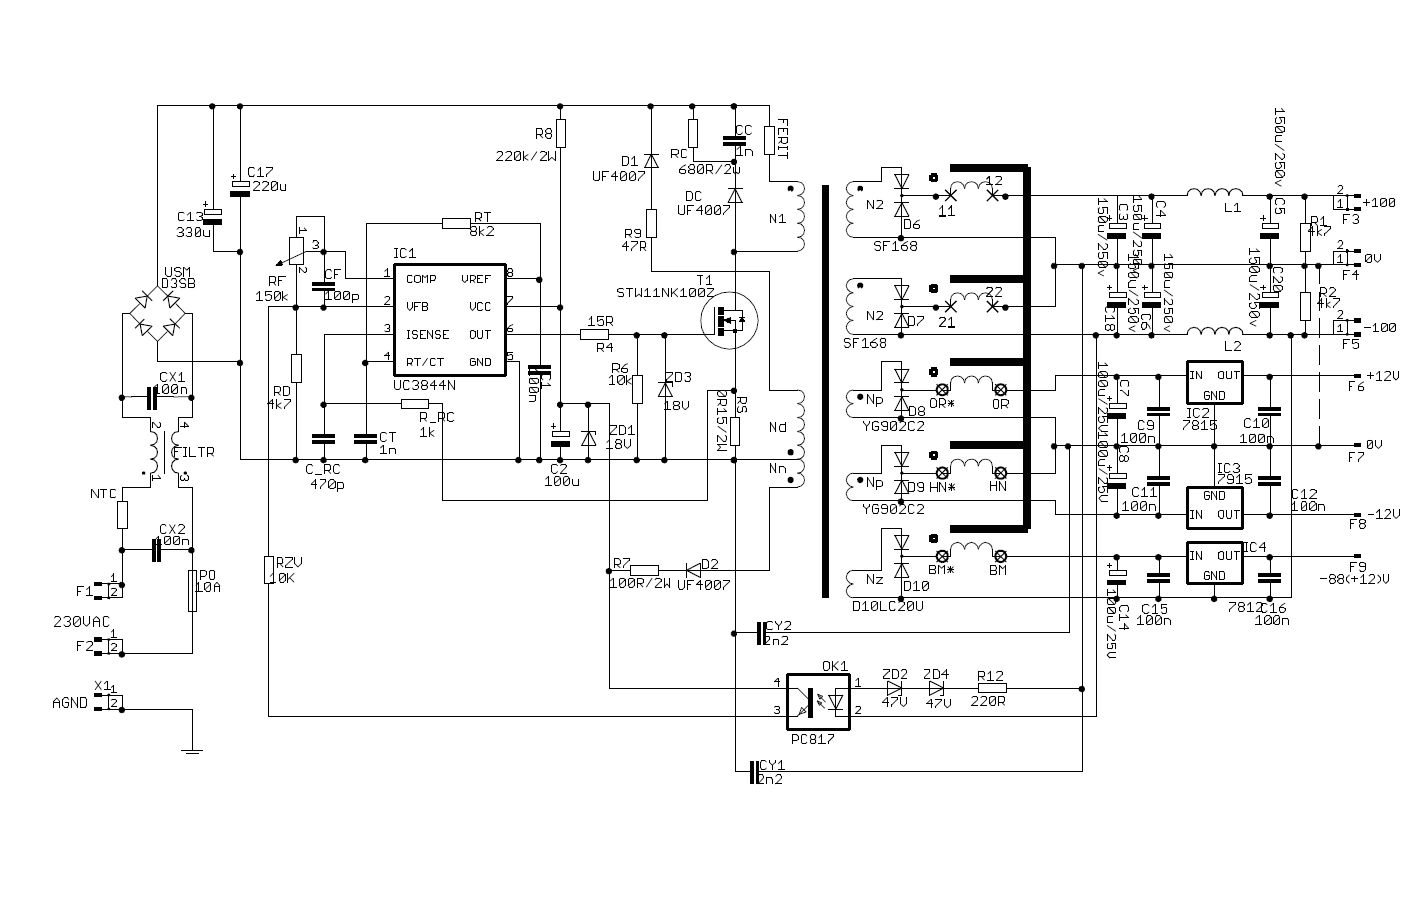 medium resolution of 2x100v 500w audio amplifier smps power supply switchmode uc3844 2x100v smps circuit schematic 120x120